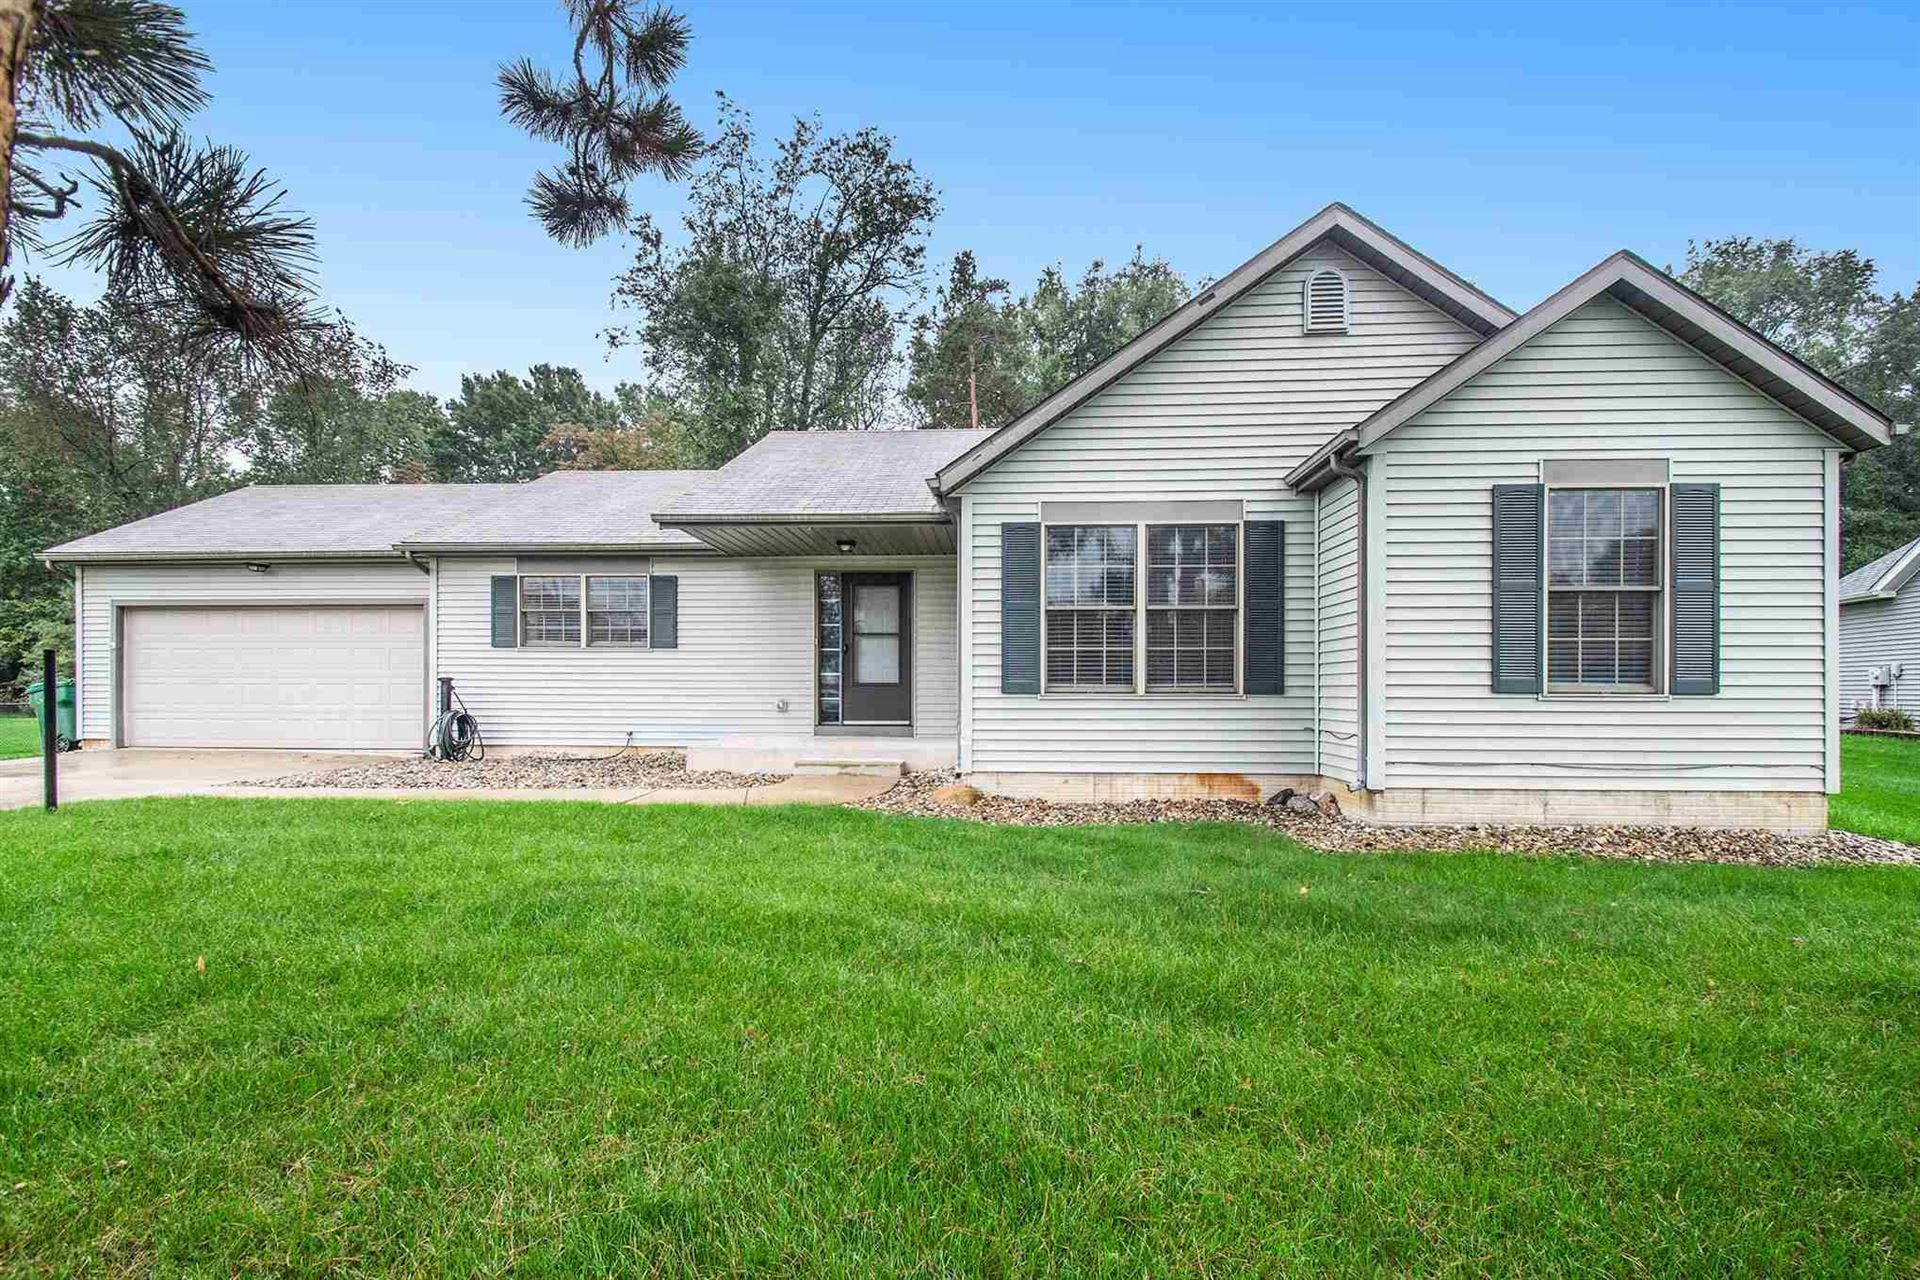 26862 Rozana Court, South Bend, IN 46619 - MLS#: 202143826